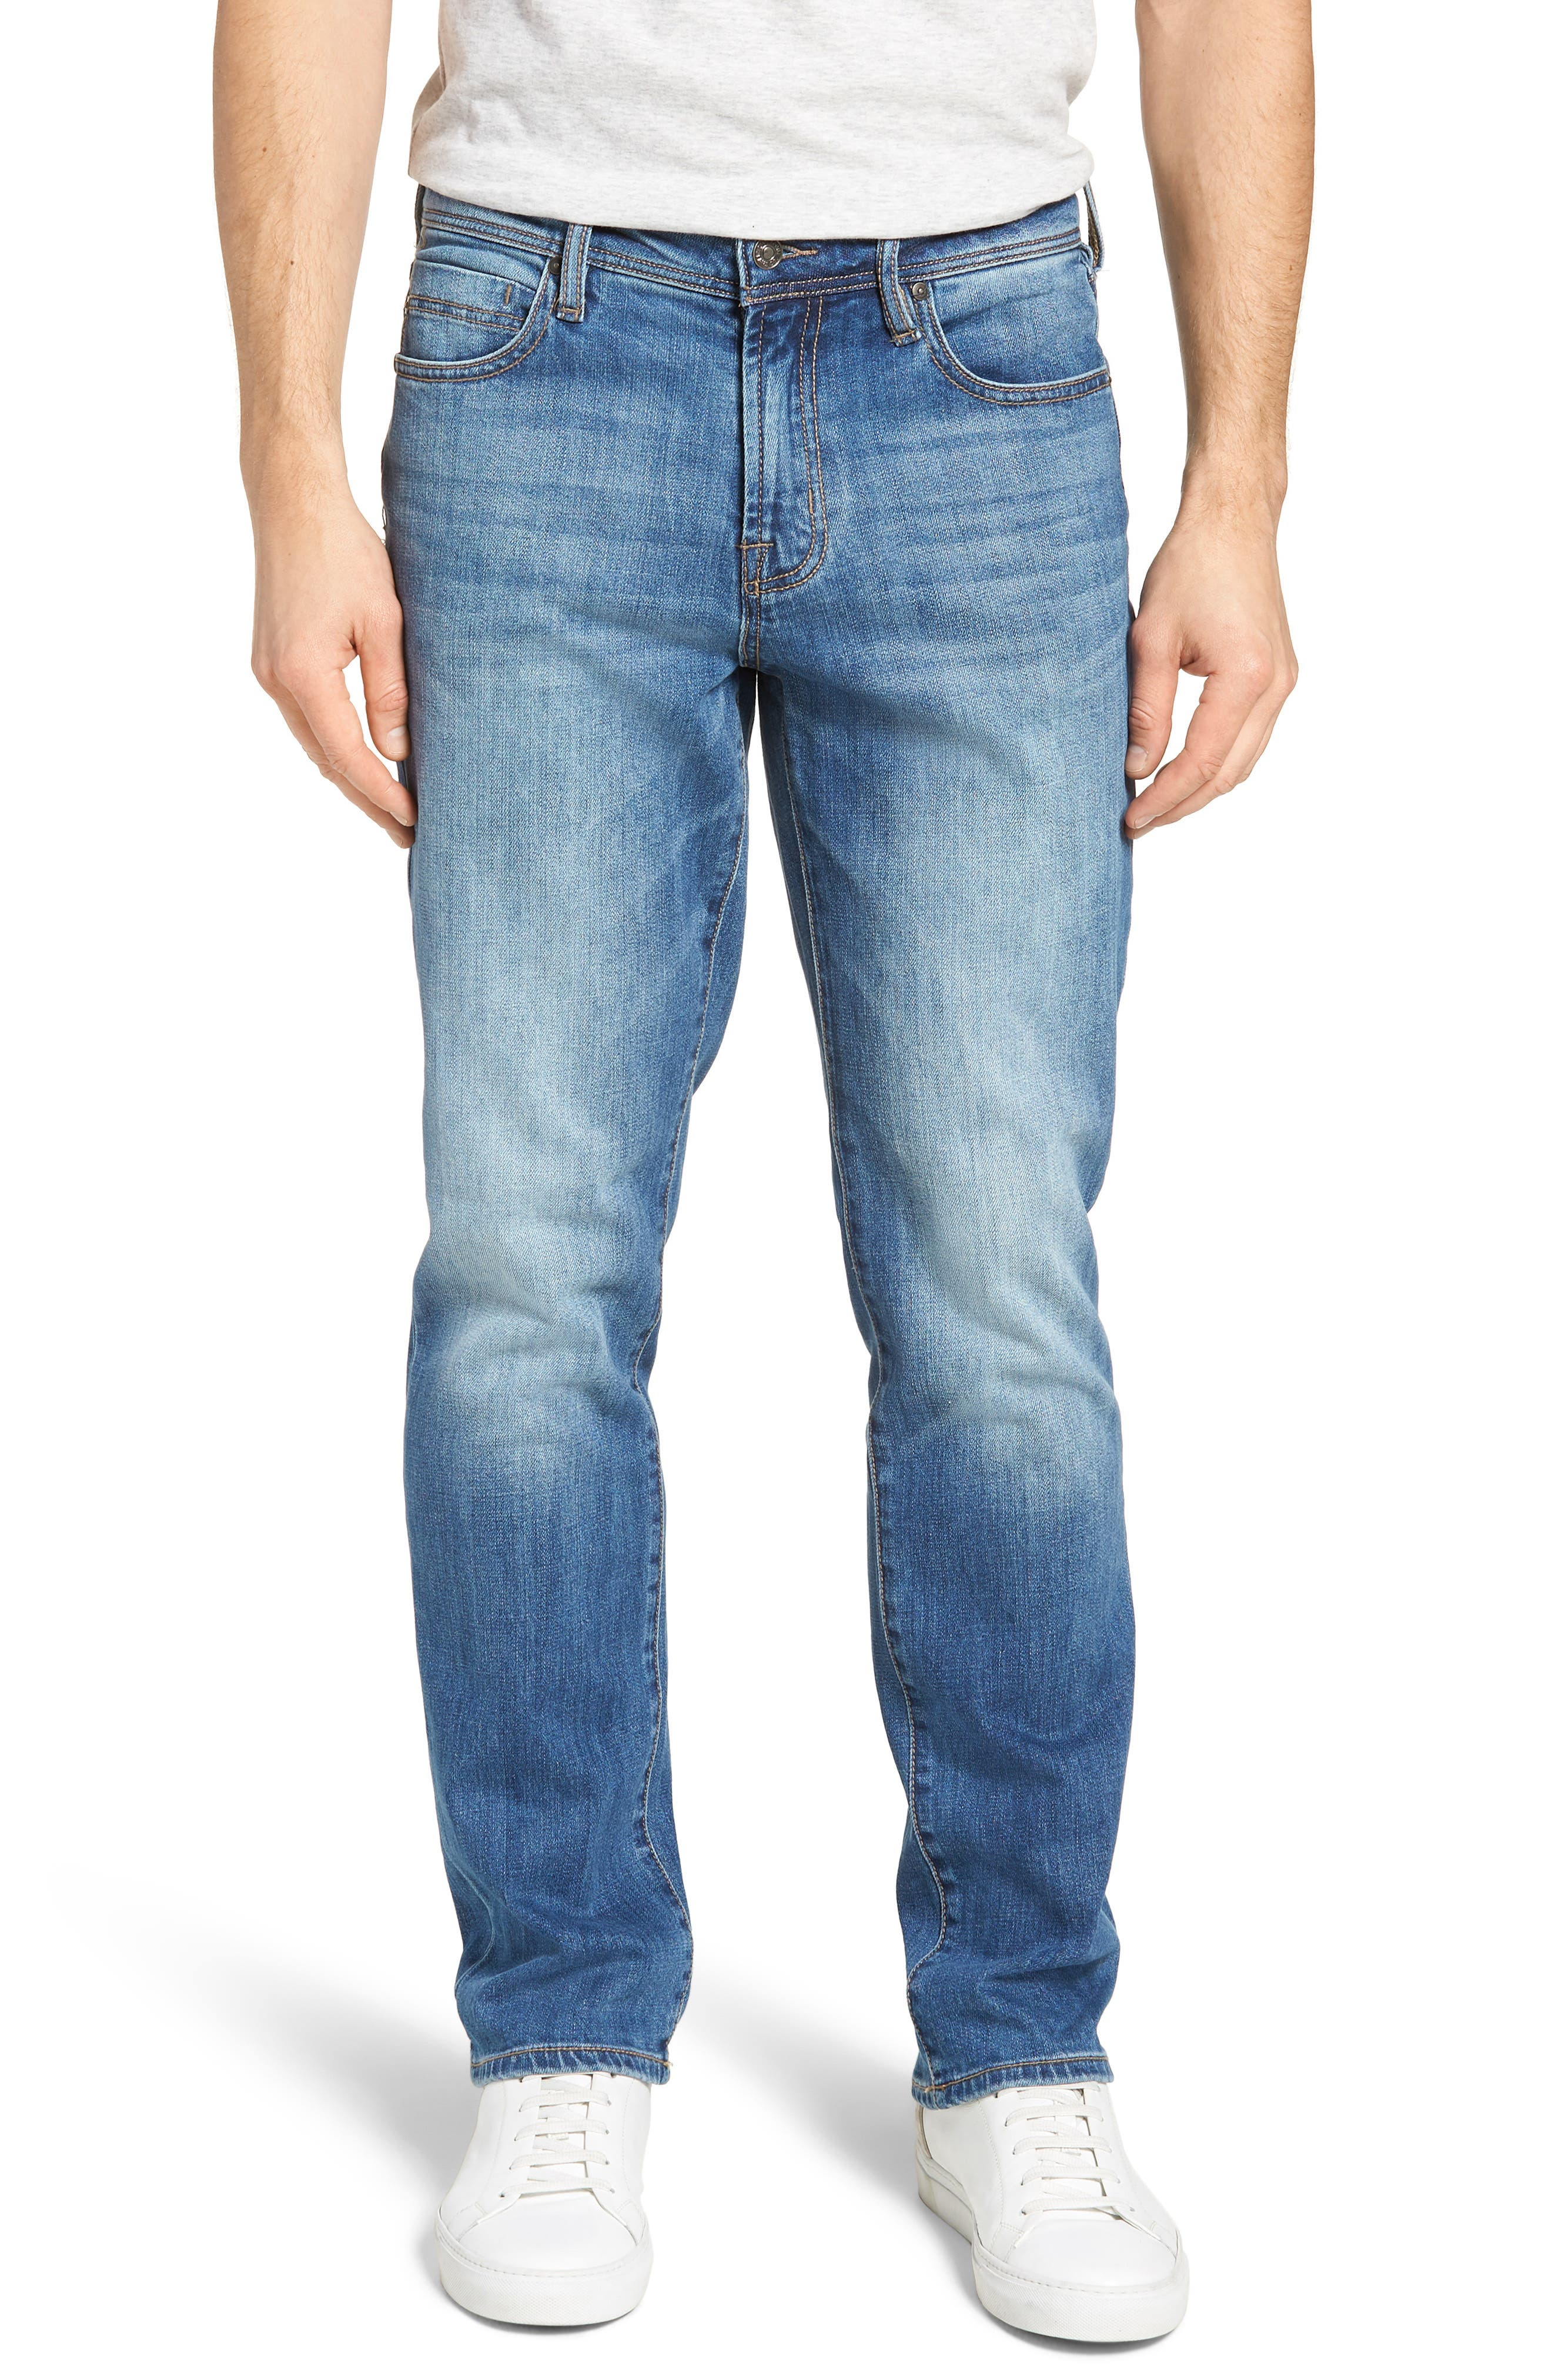 Jeans Co. Relaxed Fit Jeans,                         Main,                         color, BRYSON VINTAGE MED